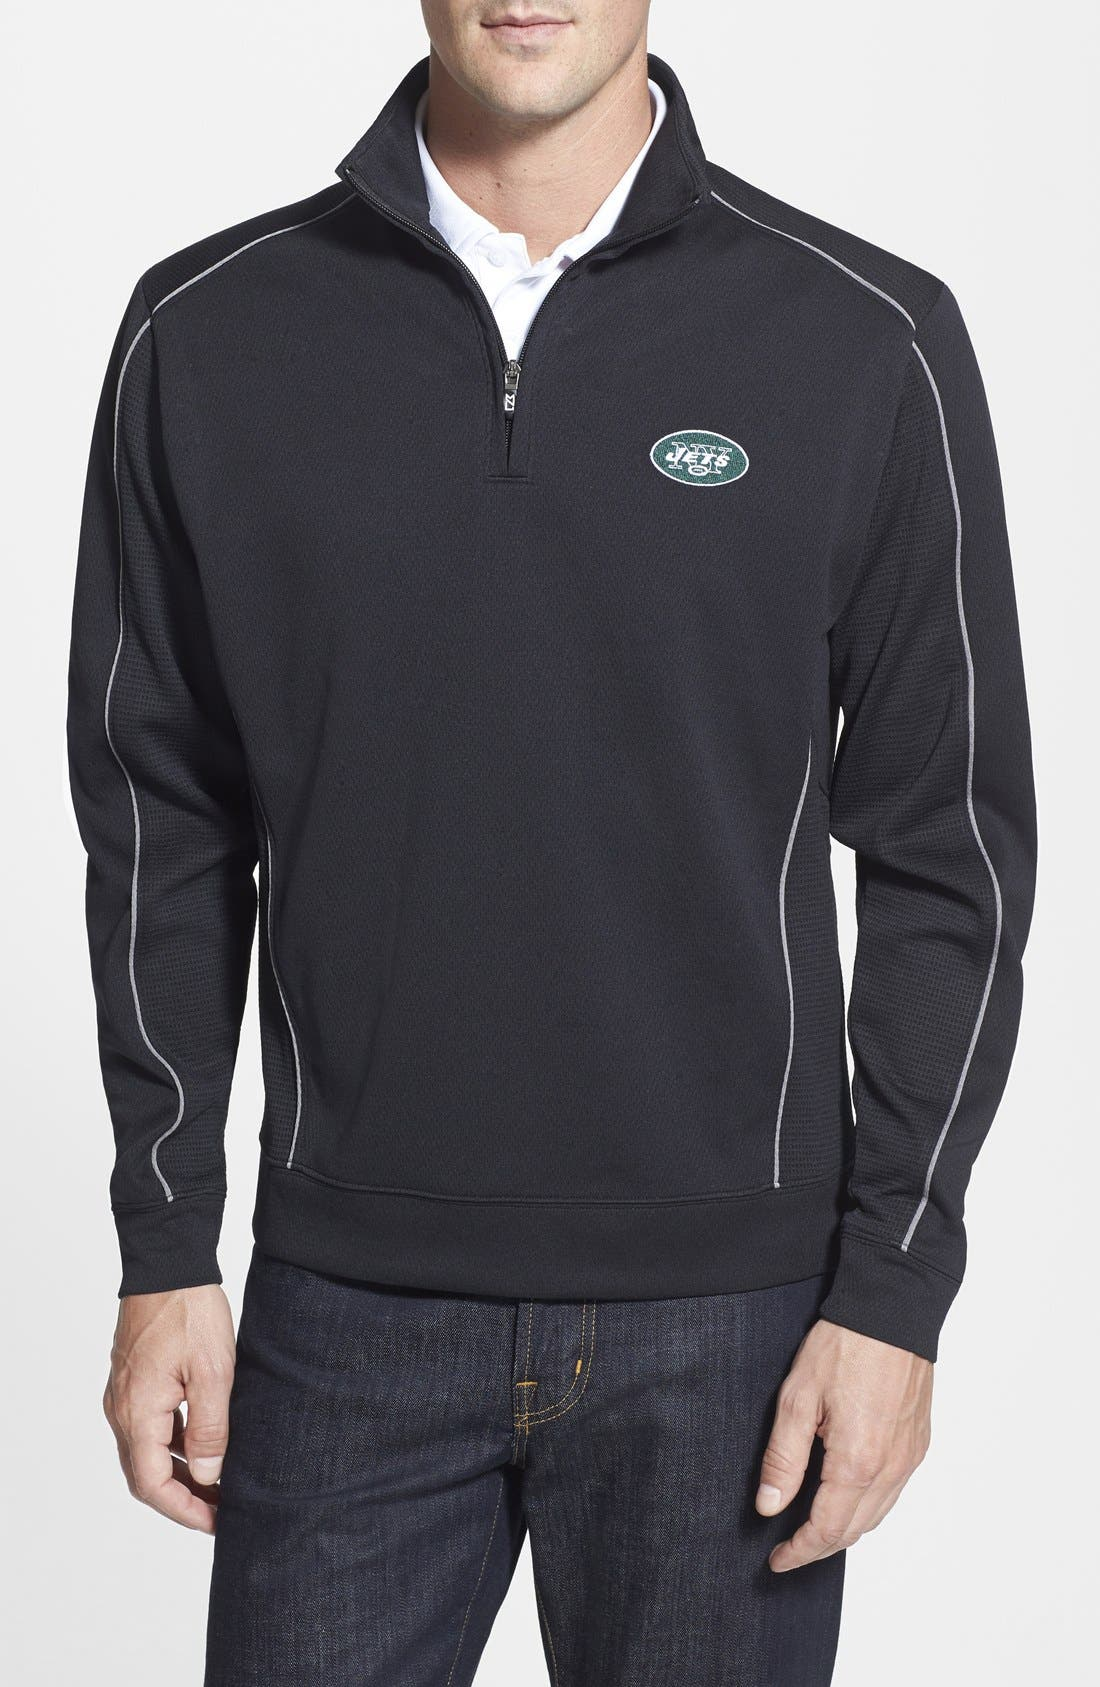 Alternate Image 1 Selected - Cutter & Buck New York Jets - Edge DryTec Moisture Wicking Half Zip Pullover